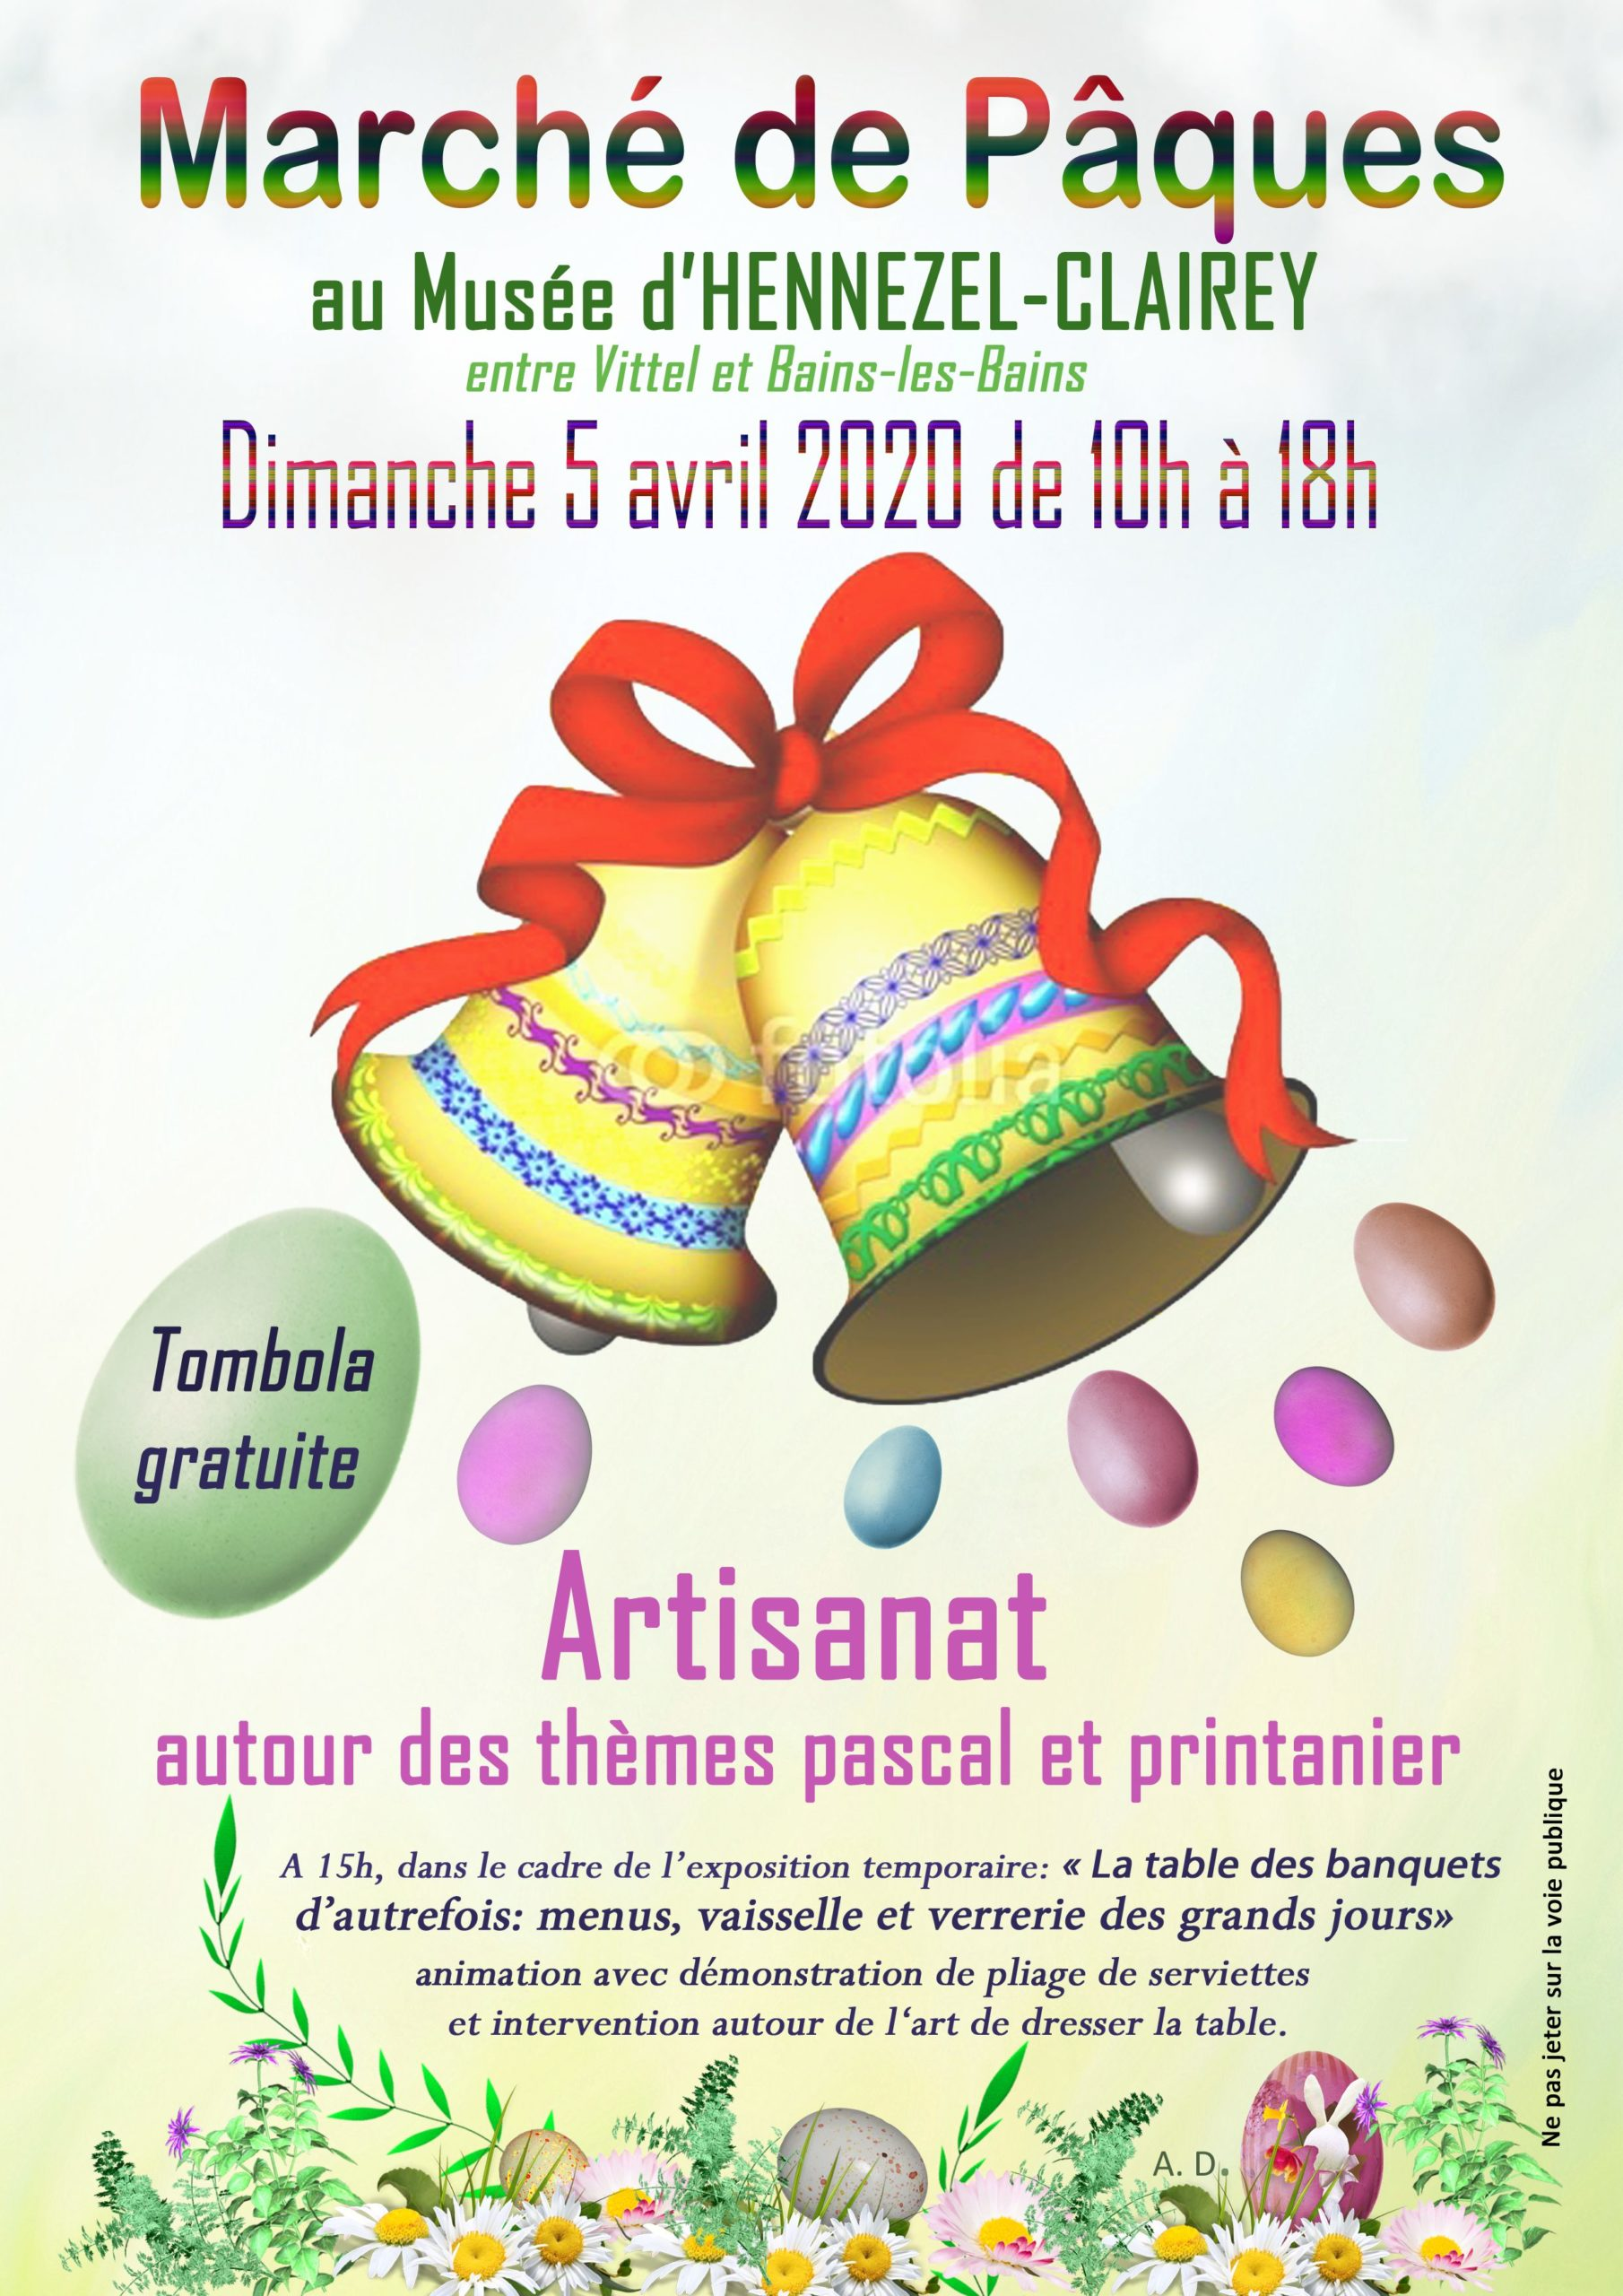 https://www.museesgrandest.org/wp-content/uploads/2020/03/affiche-paques-20-scaled.jpg